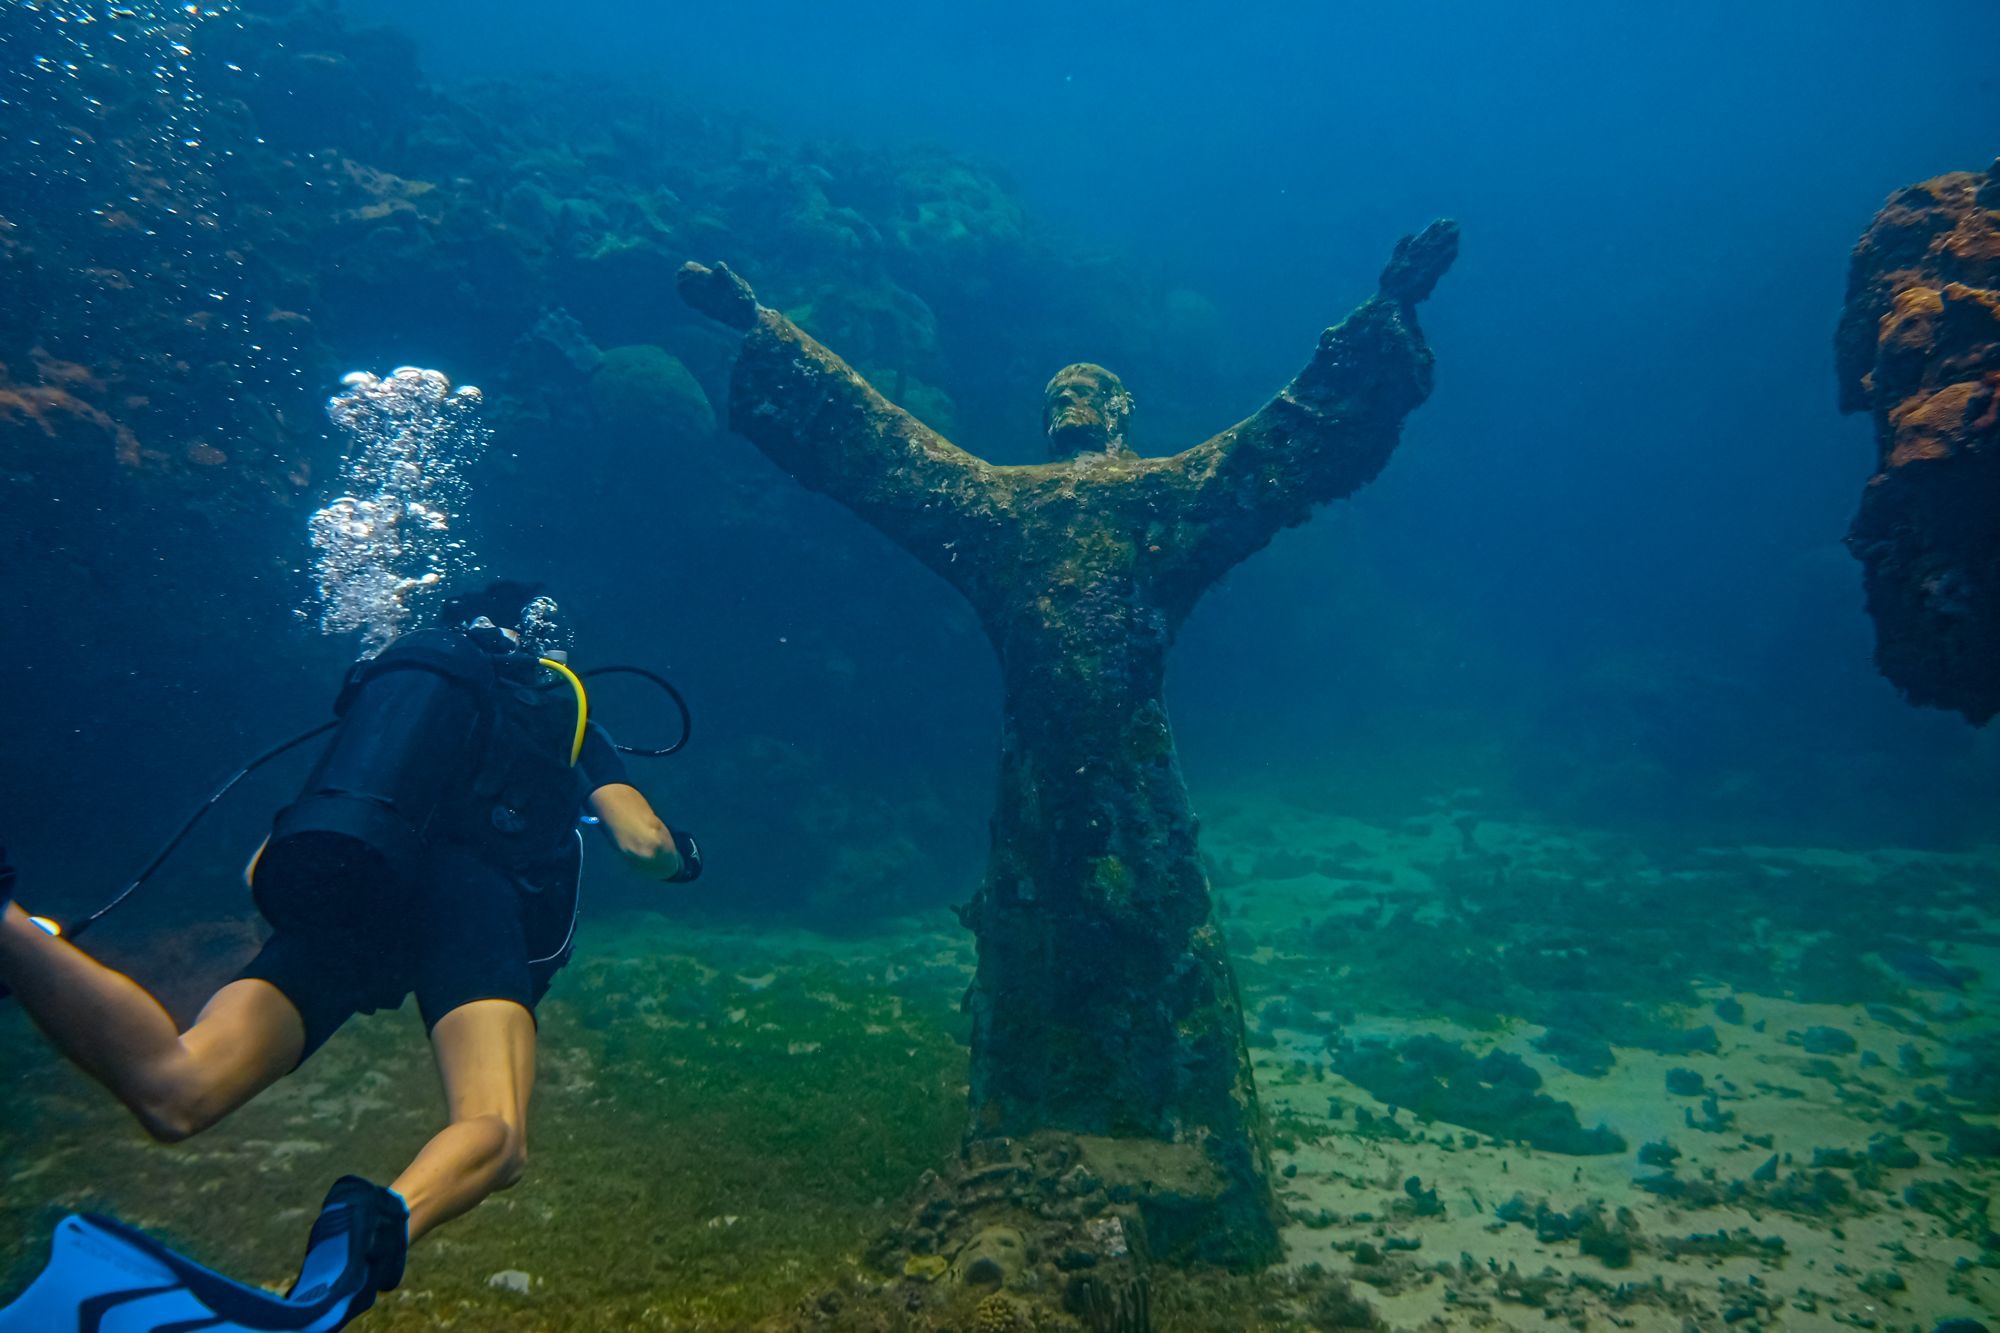 Grenada Scuba Diving Bronze Christ Underwater Statue